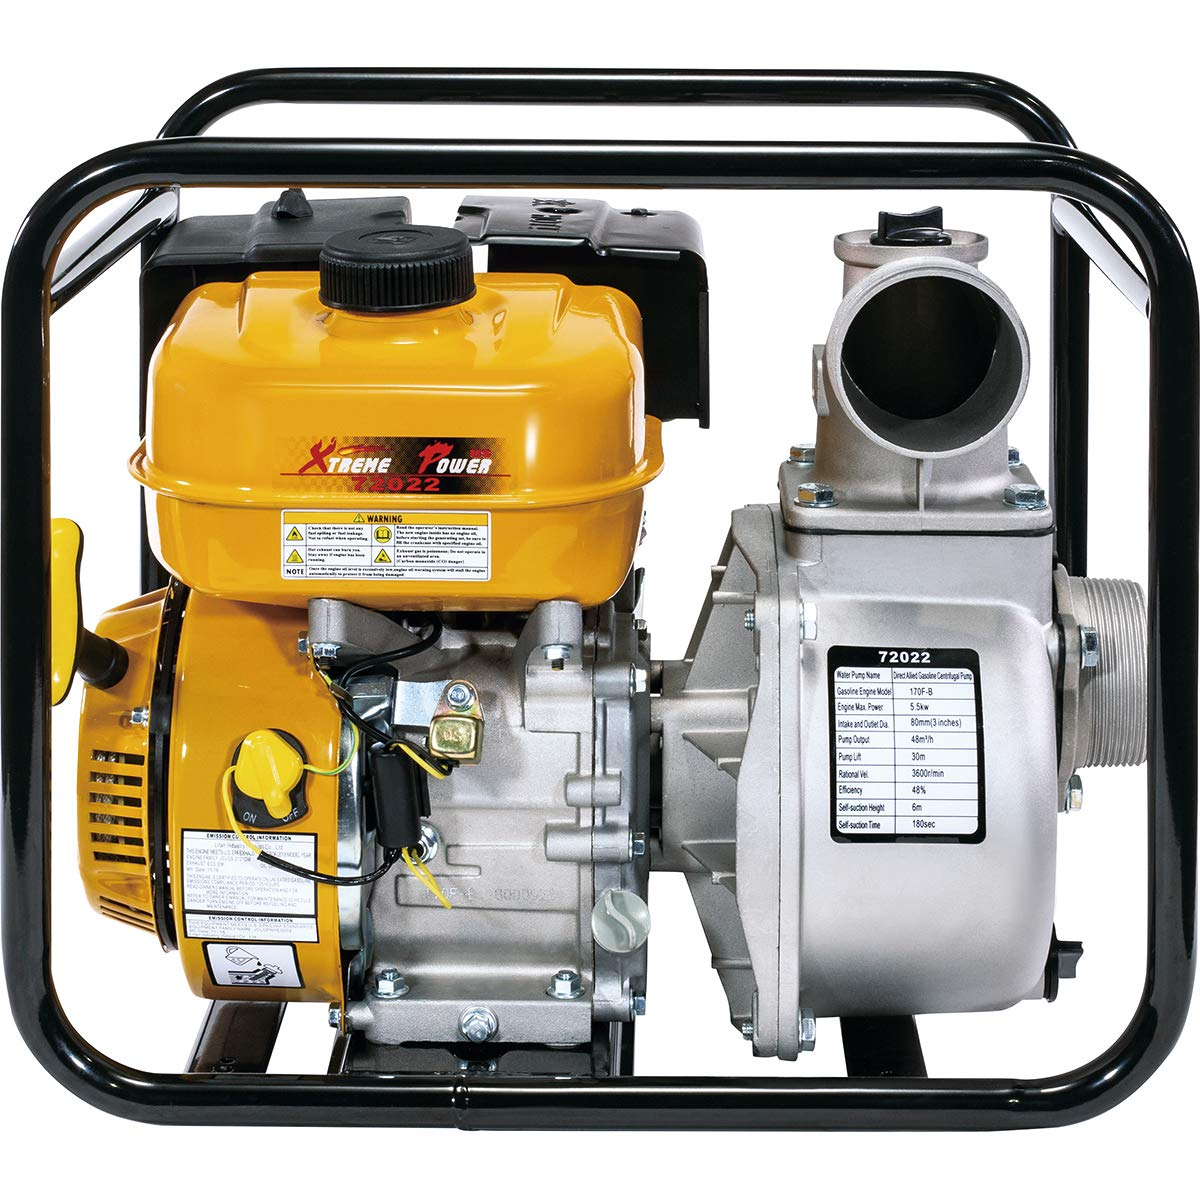 XtremepowerUS 7HP 3'' inch Gas Water Pump Gas-Powered Transfer Pump Lifan Engine Portable Gasoline Recoil, Yellow